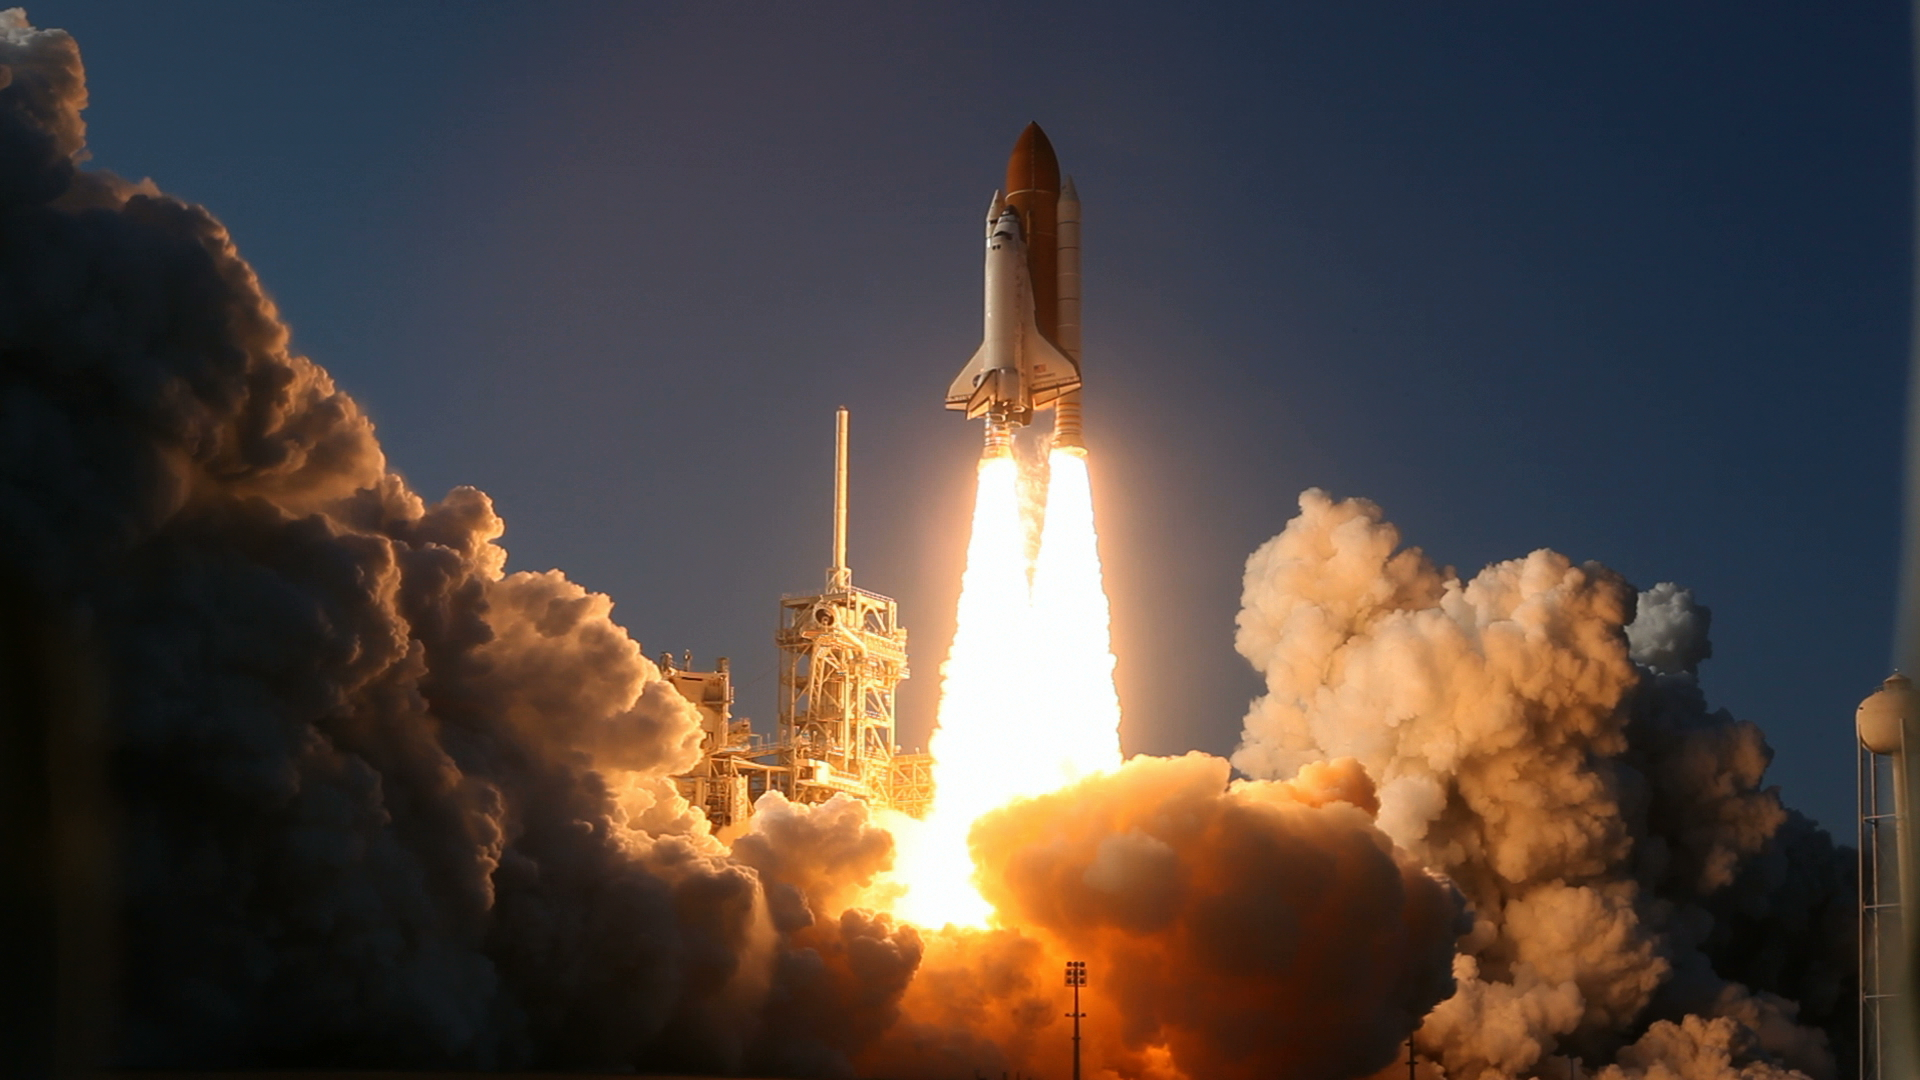 Space Launch Services - Global Market Outlook (2017-2026)